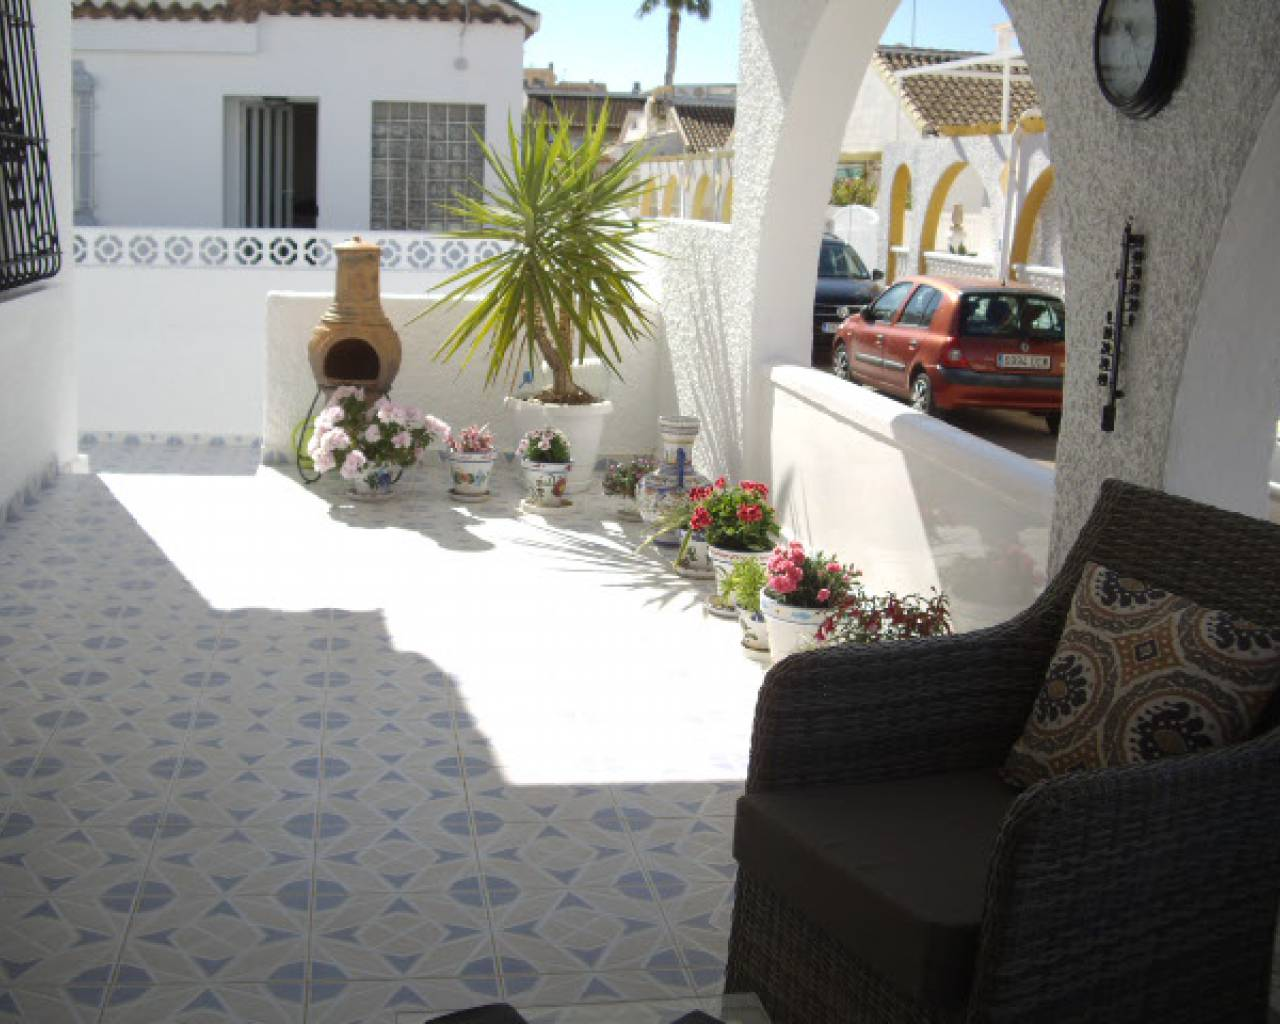 Sale - Semi-detached Villa - Los Alcázares - Oasis